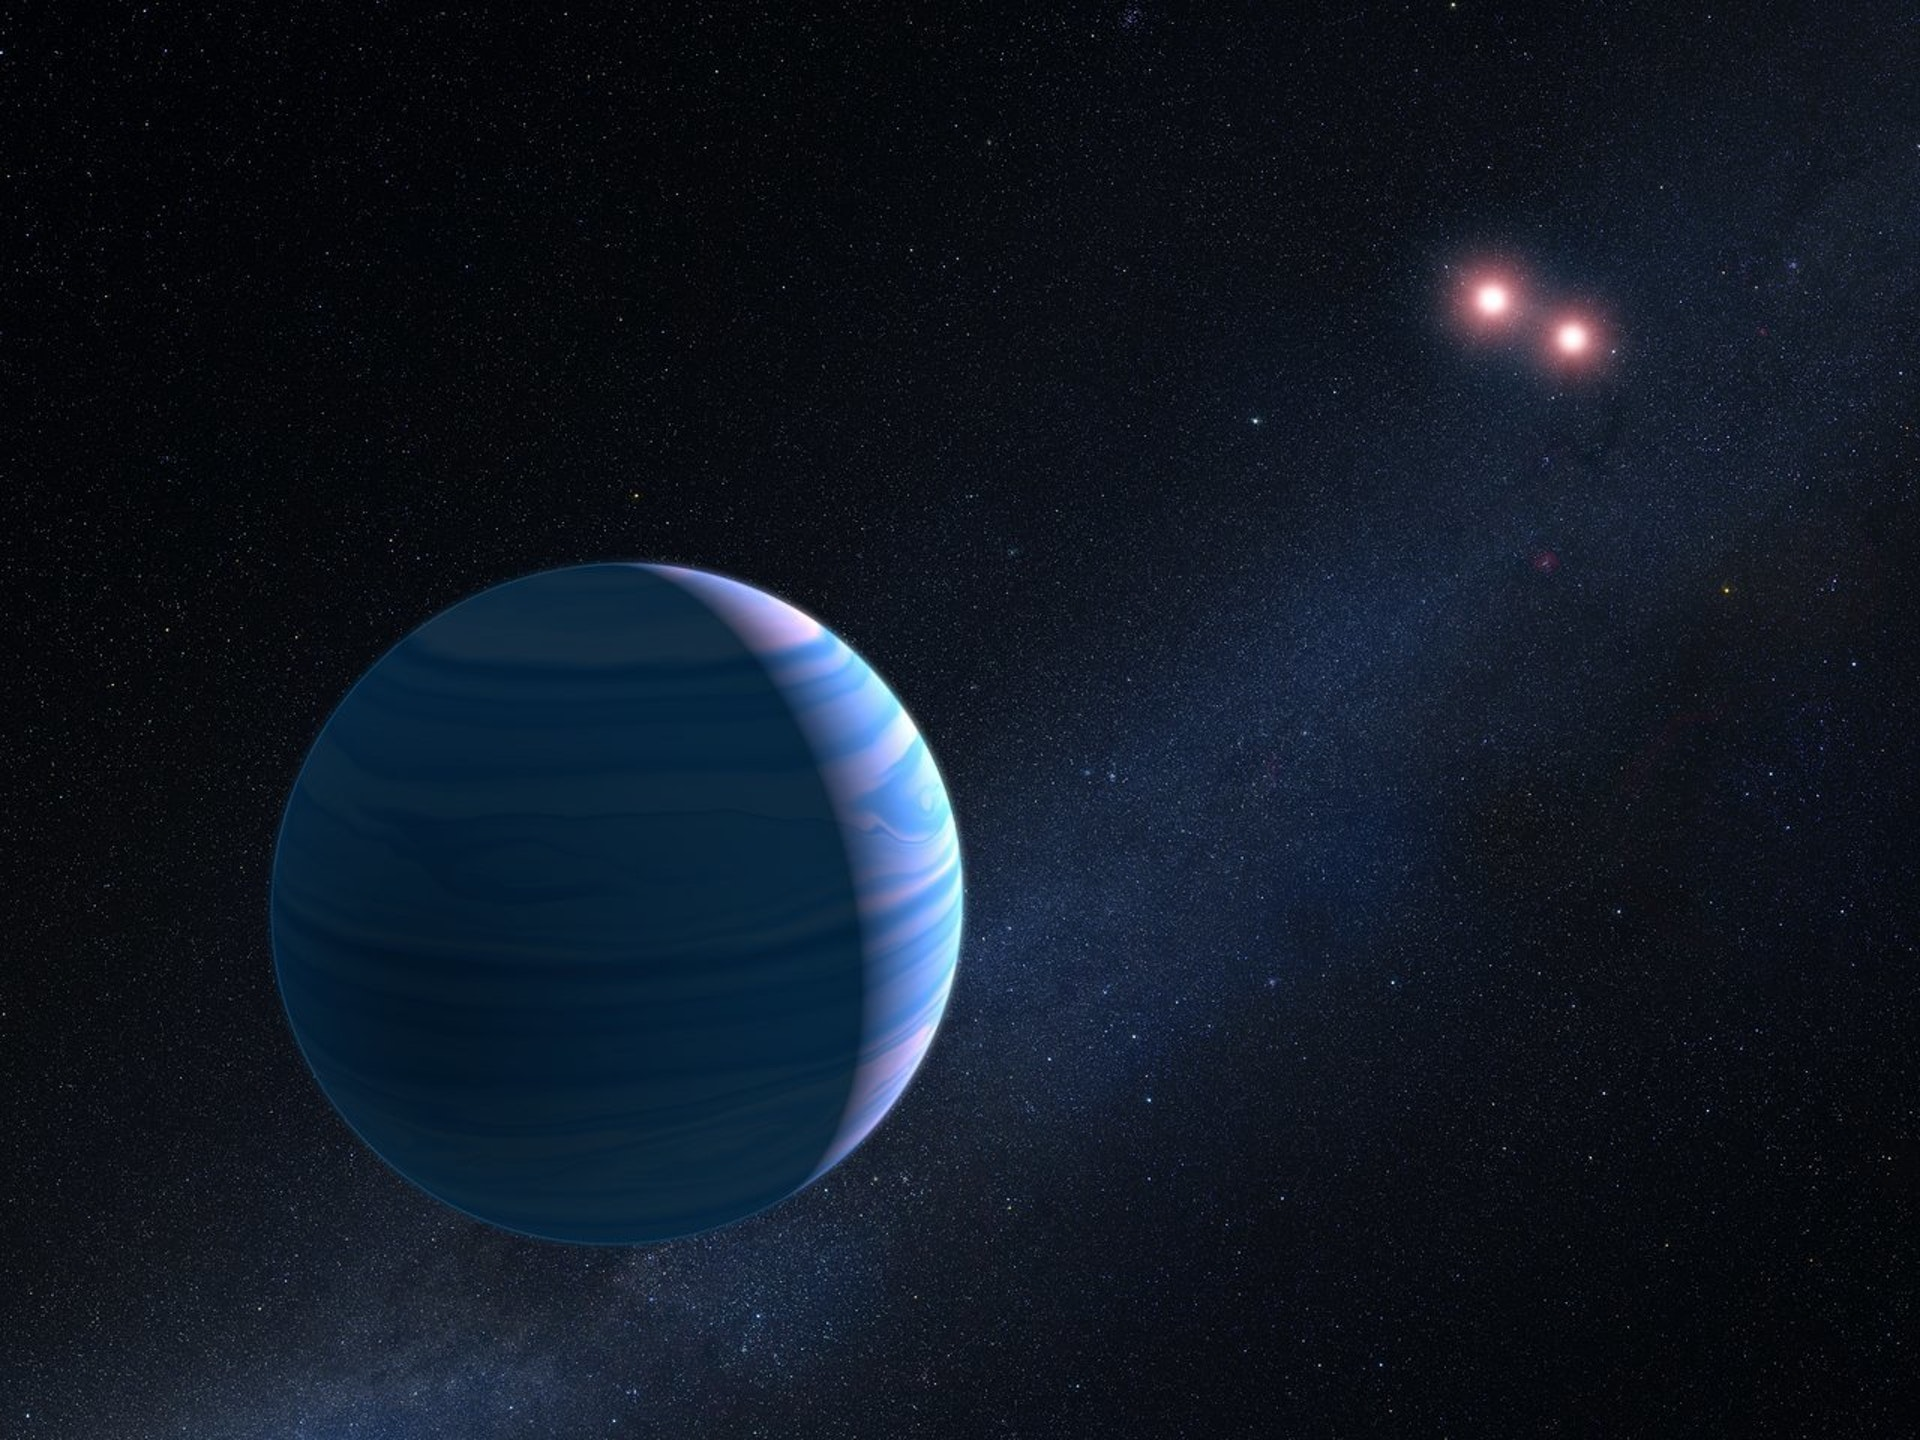 An artist's depiction of the new planet and its twin suns.